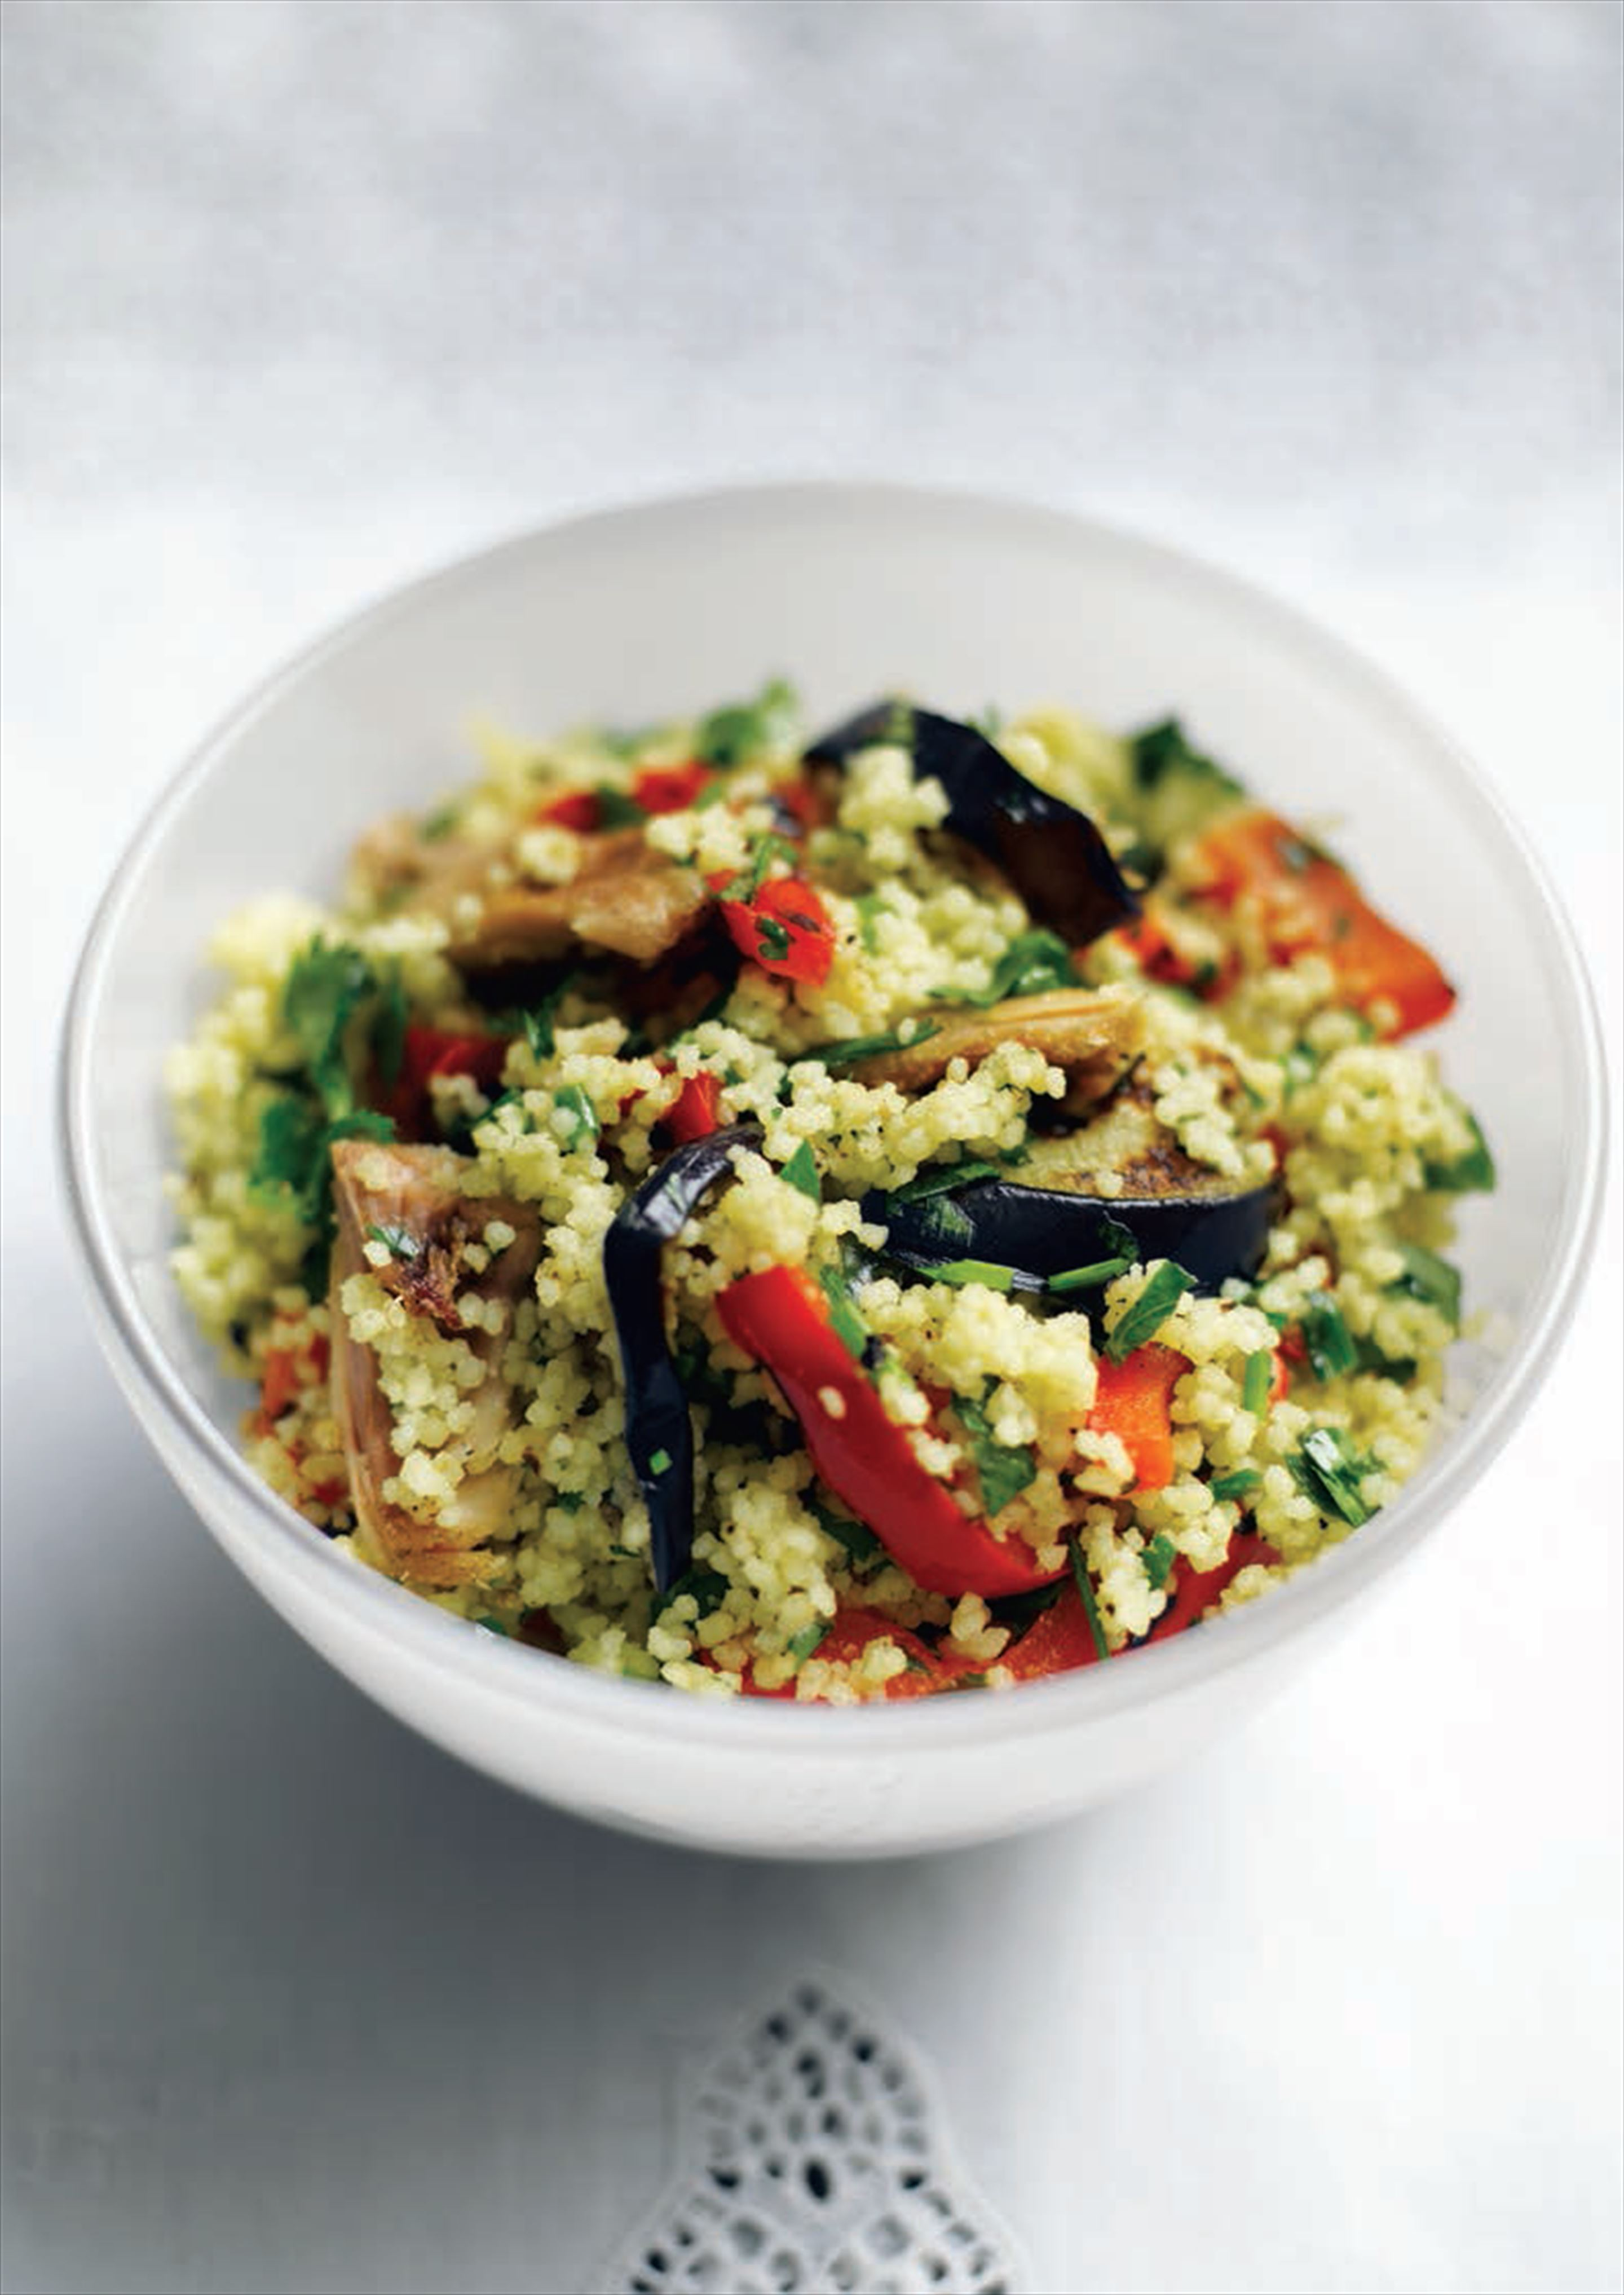 Chargrilled chicken, pepper and herb couscous salad